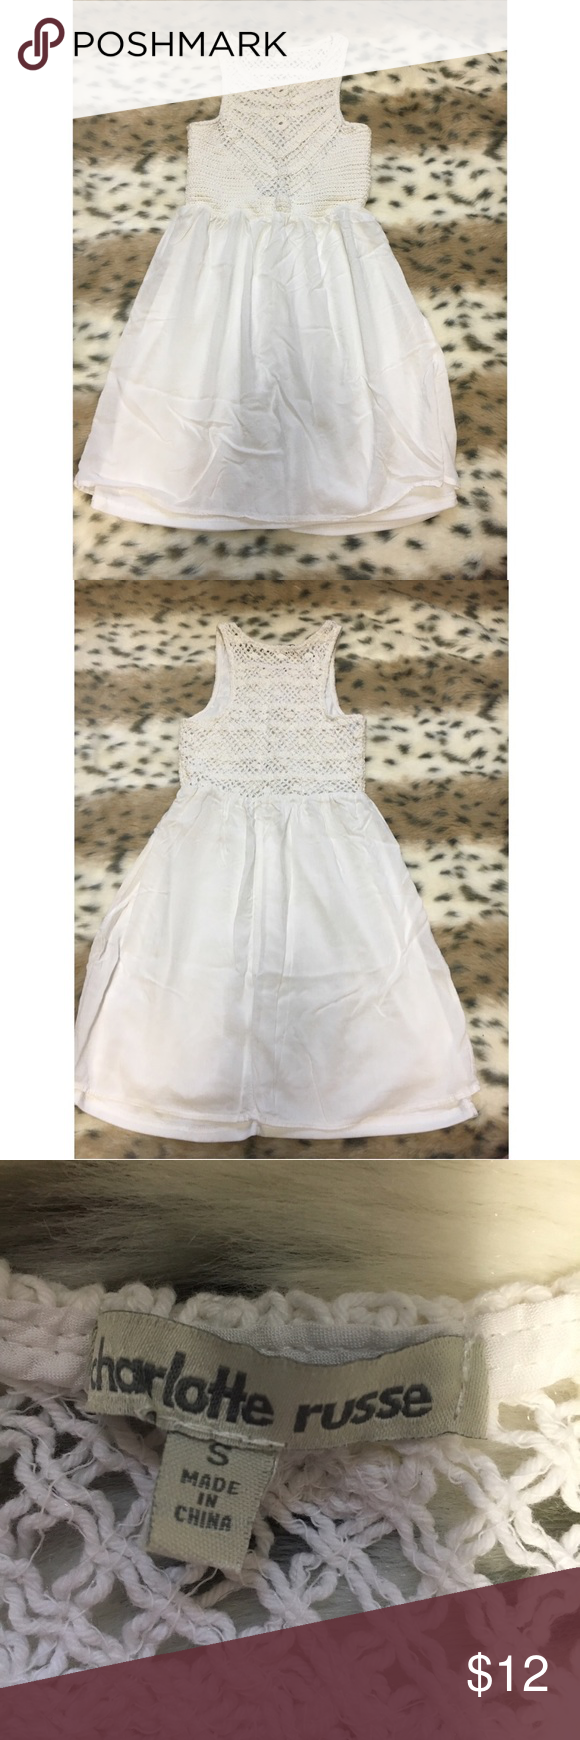 White Knit Dress Perfect condition! Size small. Lining under Dress. Charlotte Russe Dresses